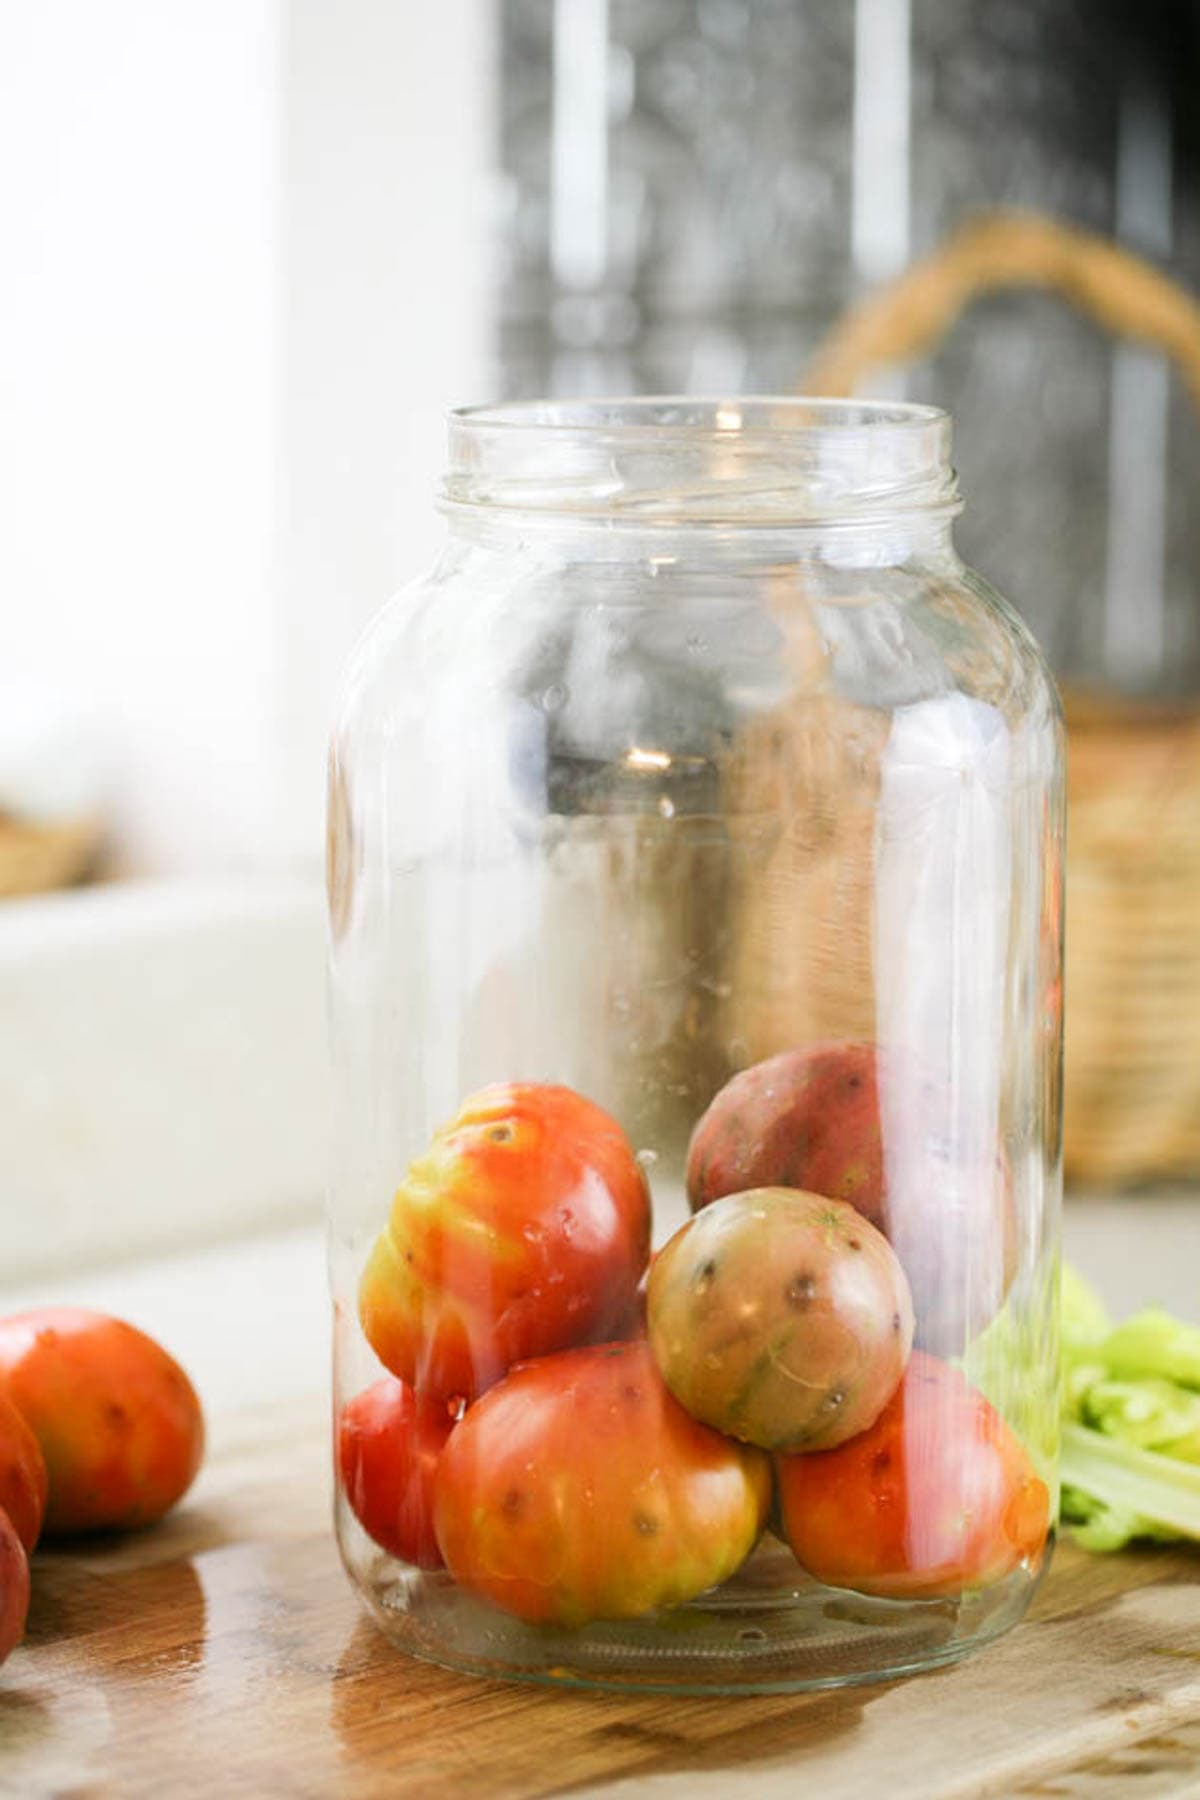 Adding tomatoes to the jar.